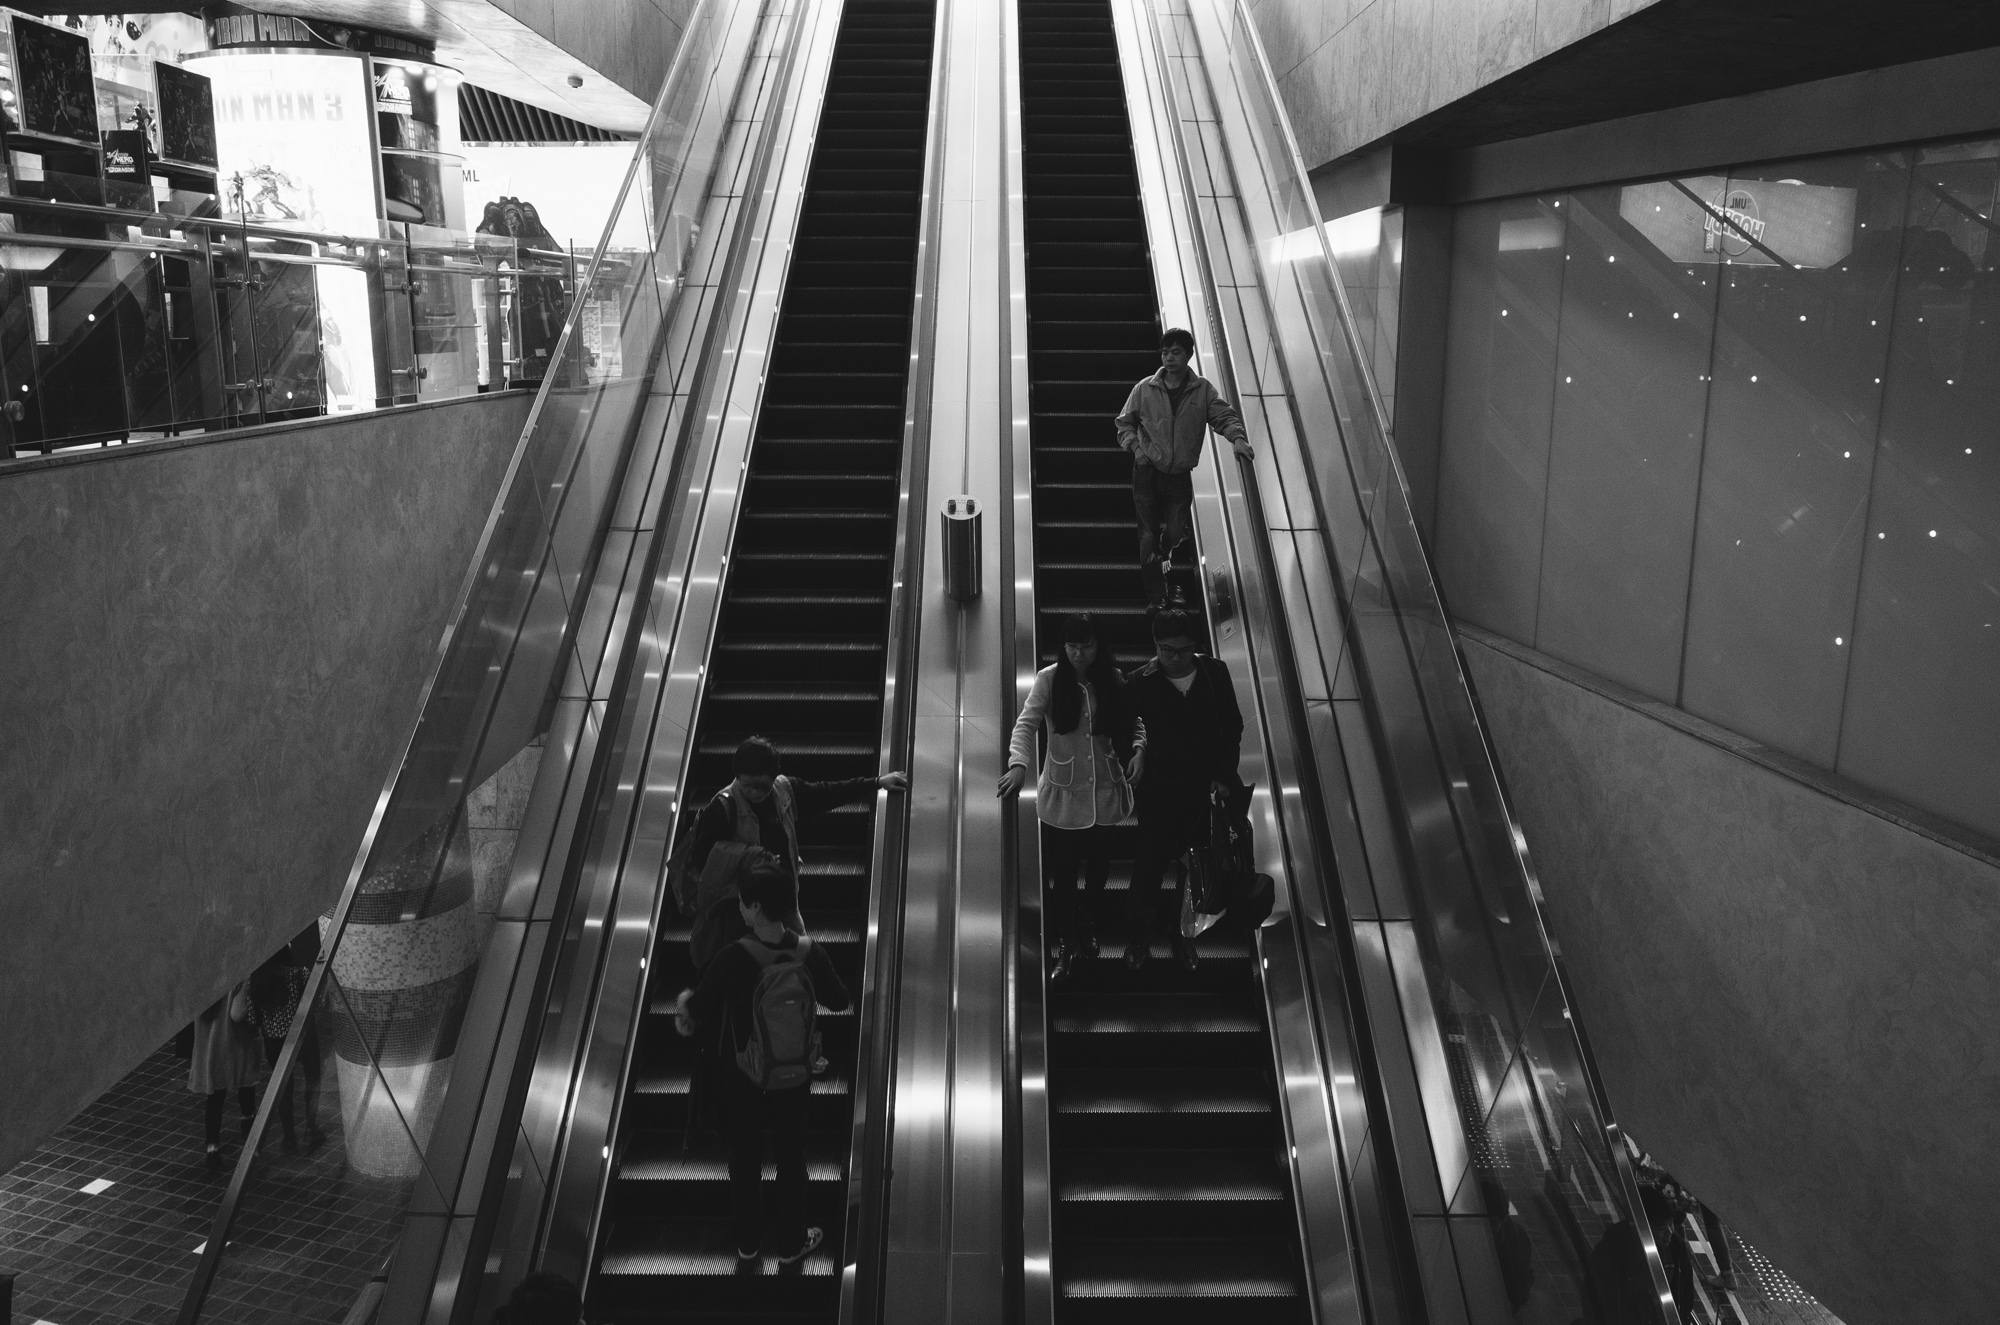 Another one of the many sets of escalators.